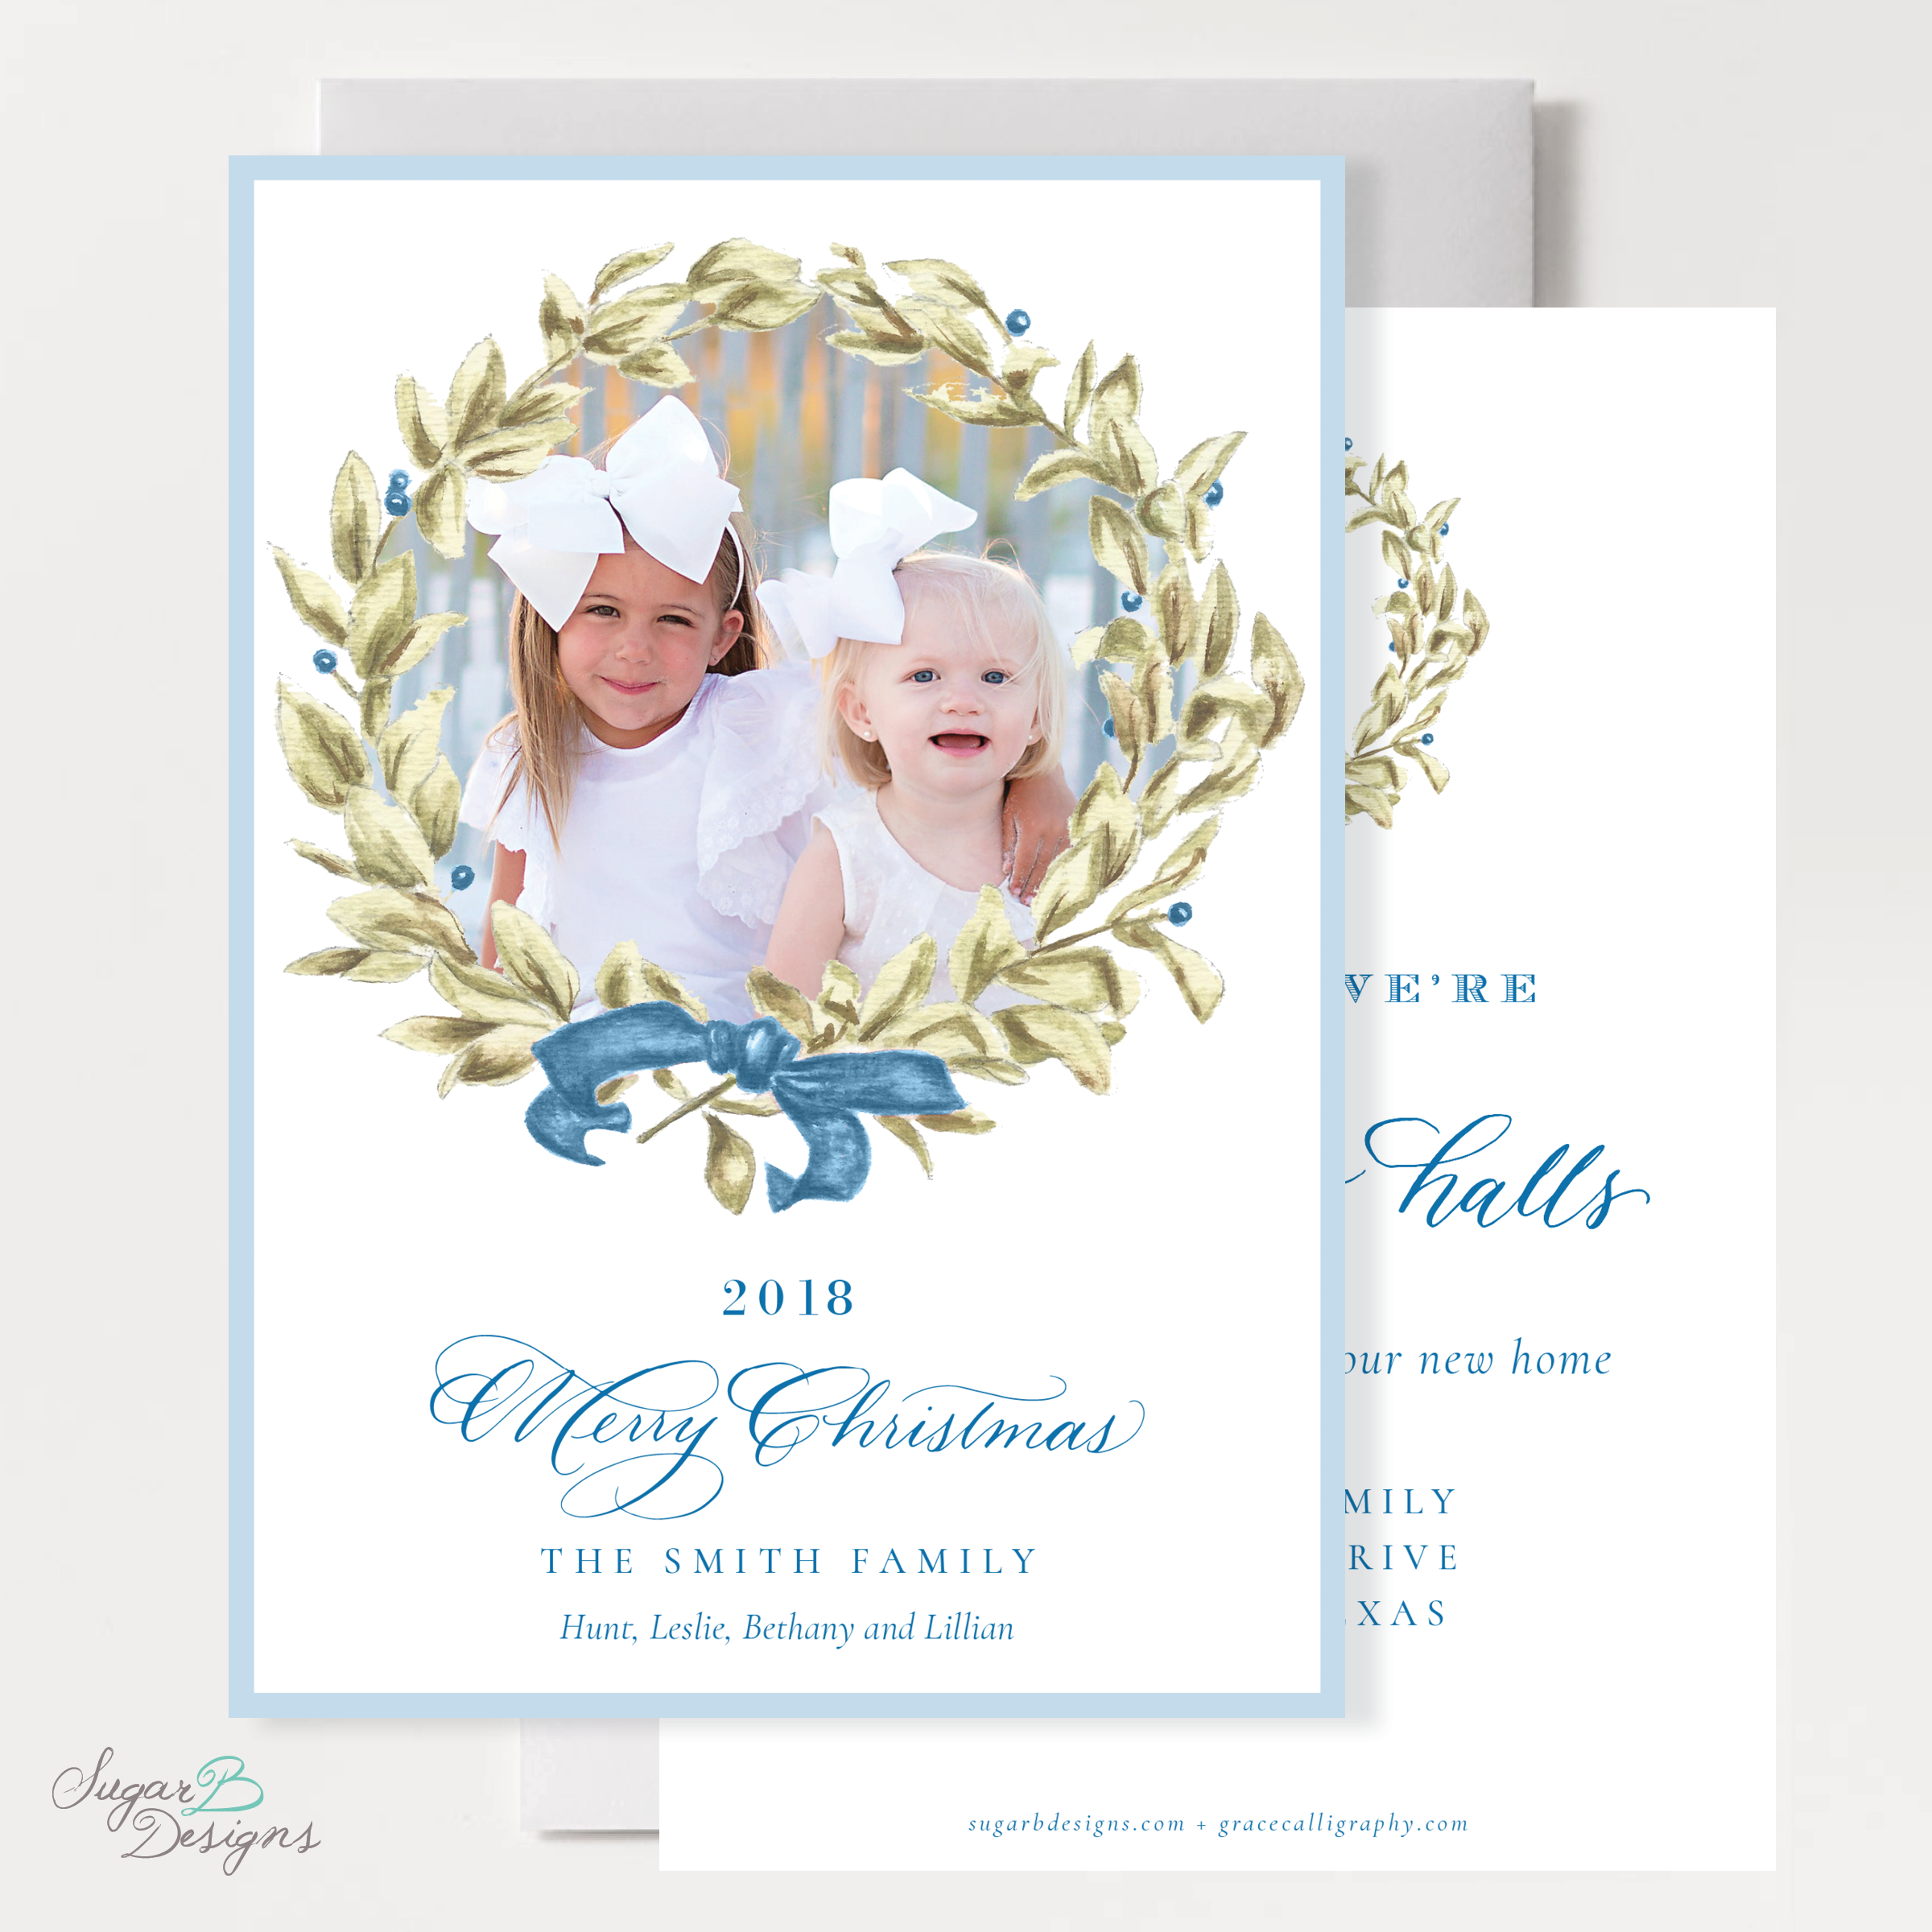 Meryl Wreath Blue Change of Address Christmas Card front + back by Sugar B Designs.png